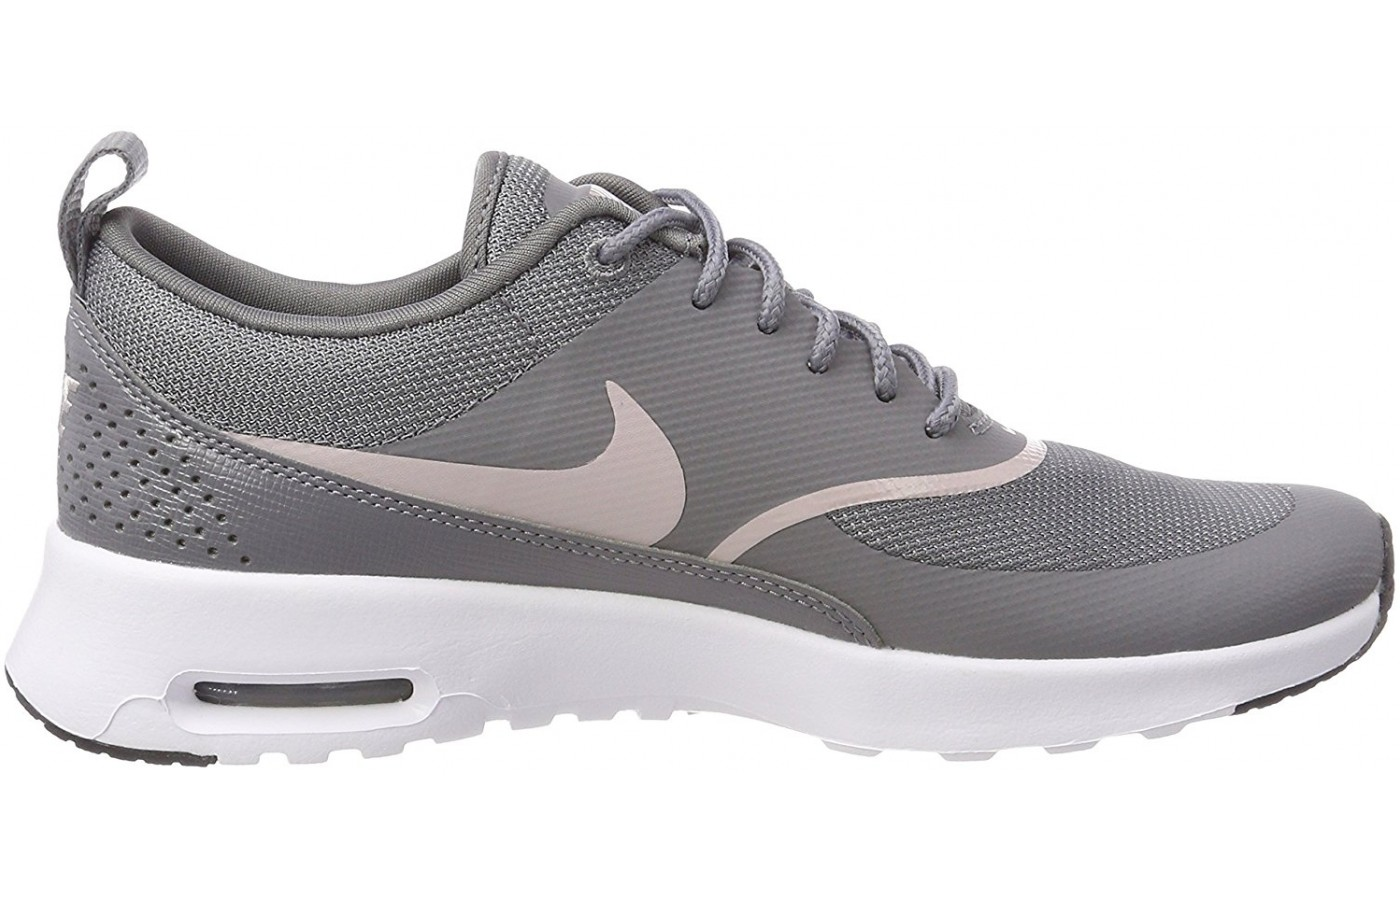 Side view of Nike Air Max Thea